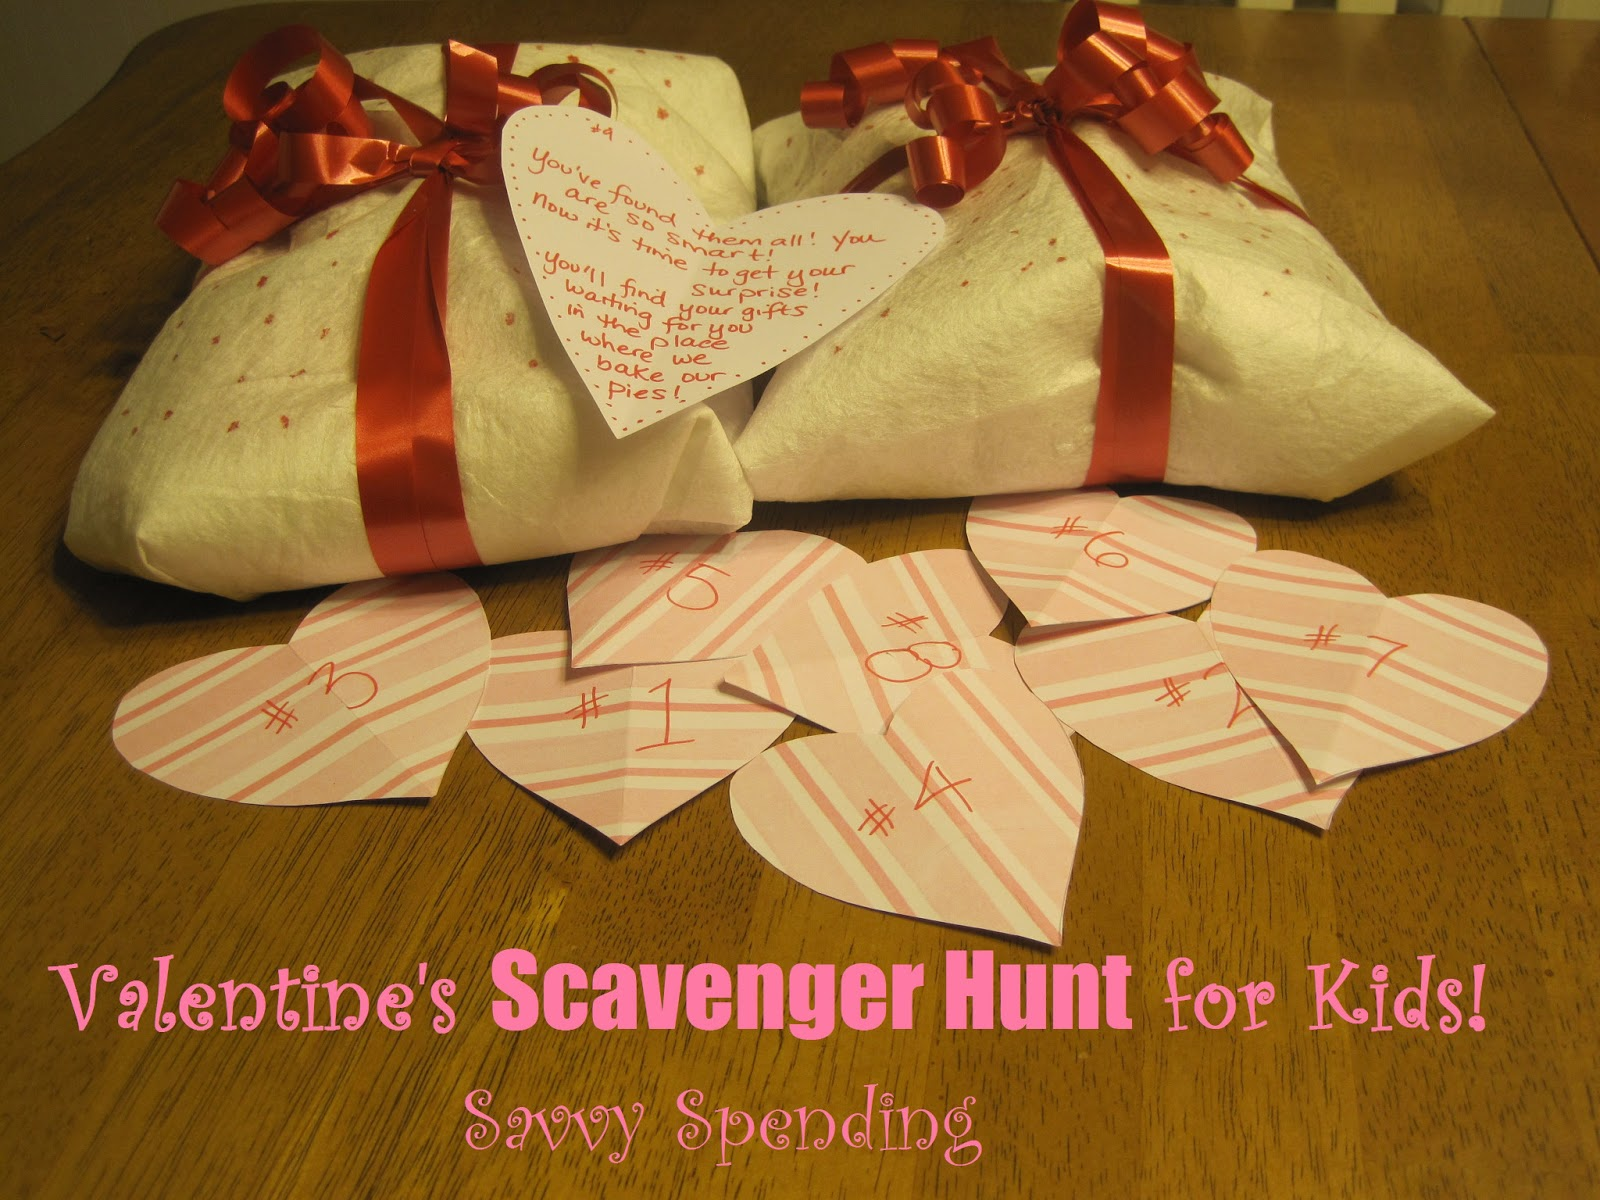 Savvy Spending My Most Pinned Post Valentine S Scavenger Hunt For Kids 9 Free Pre Written